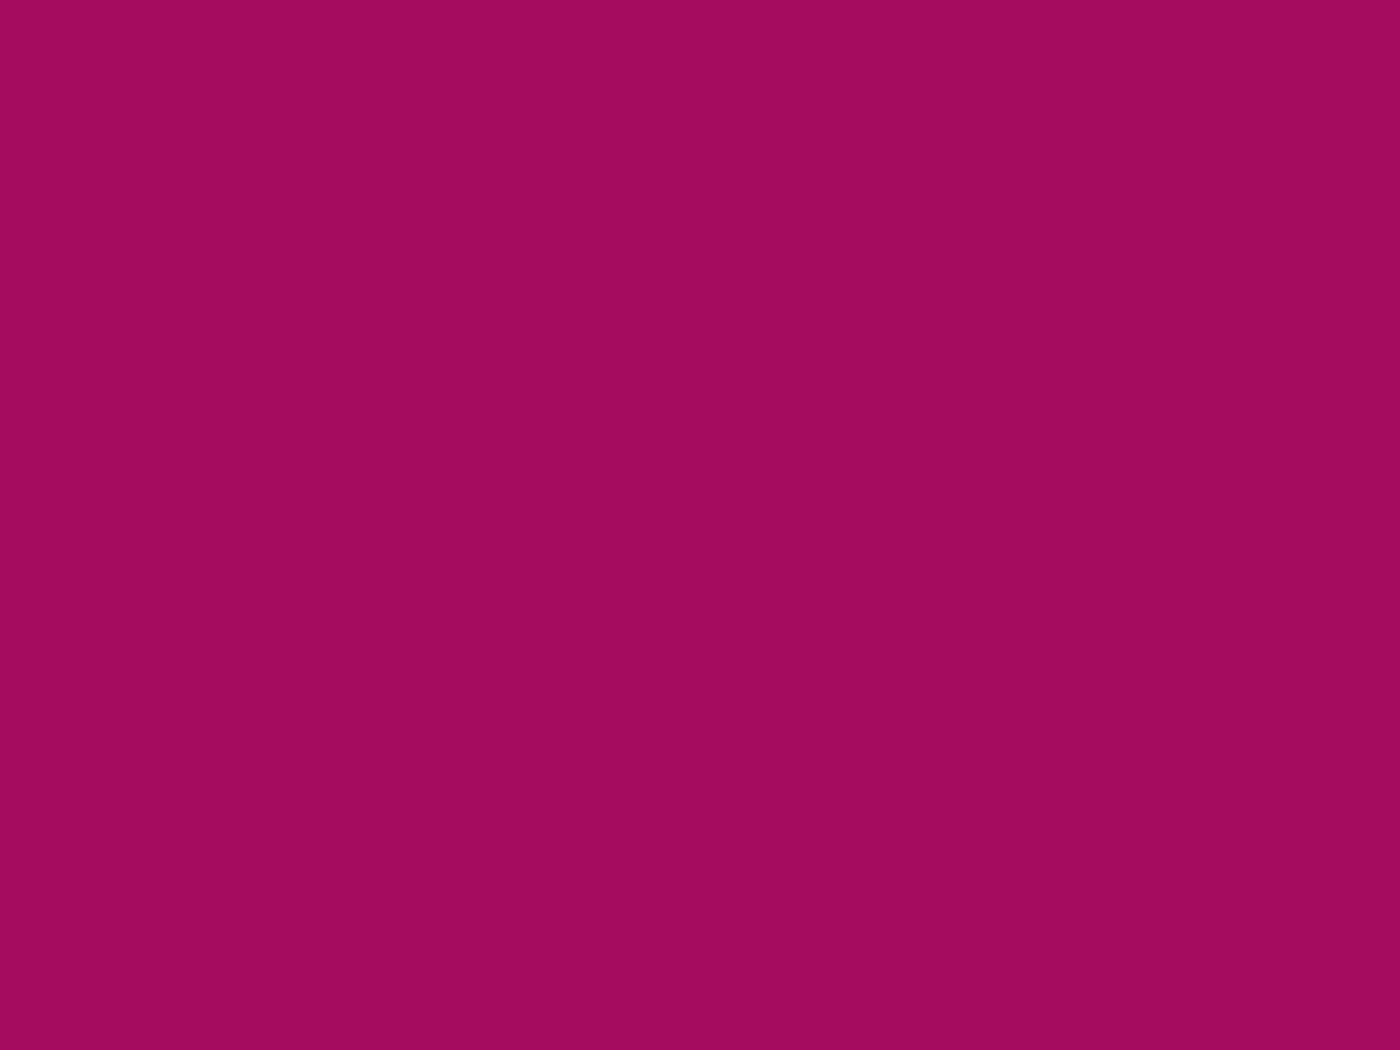 1400x1050 Jazzberry Jam Solid Color Background